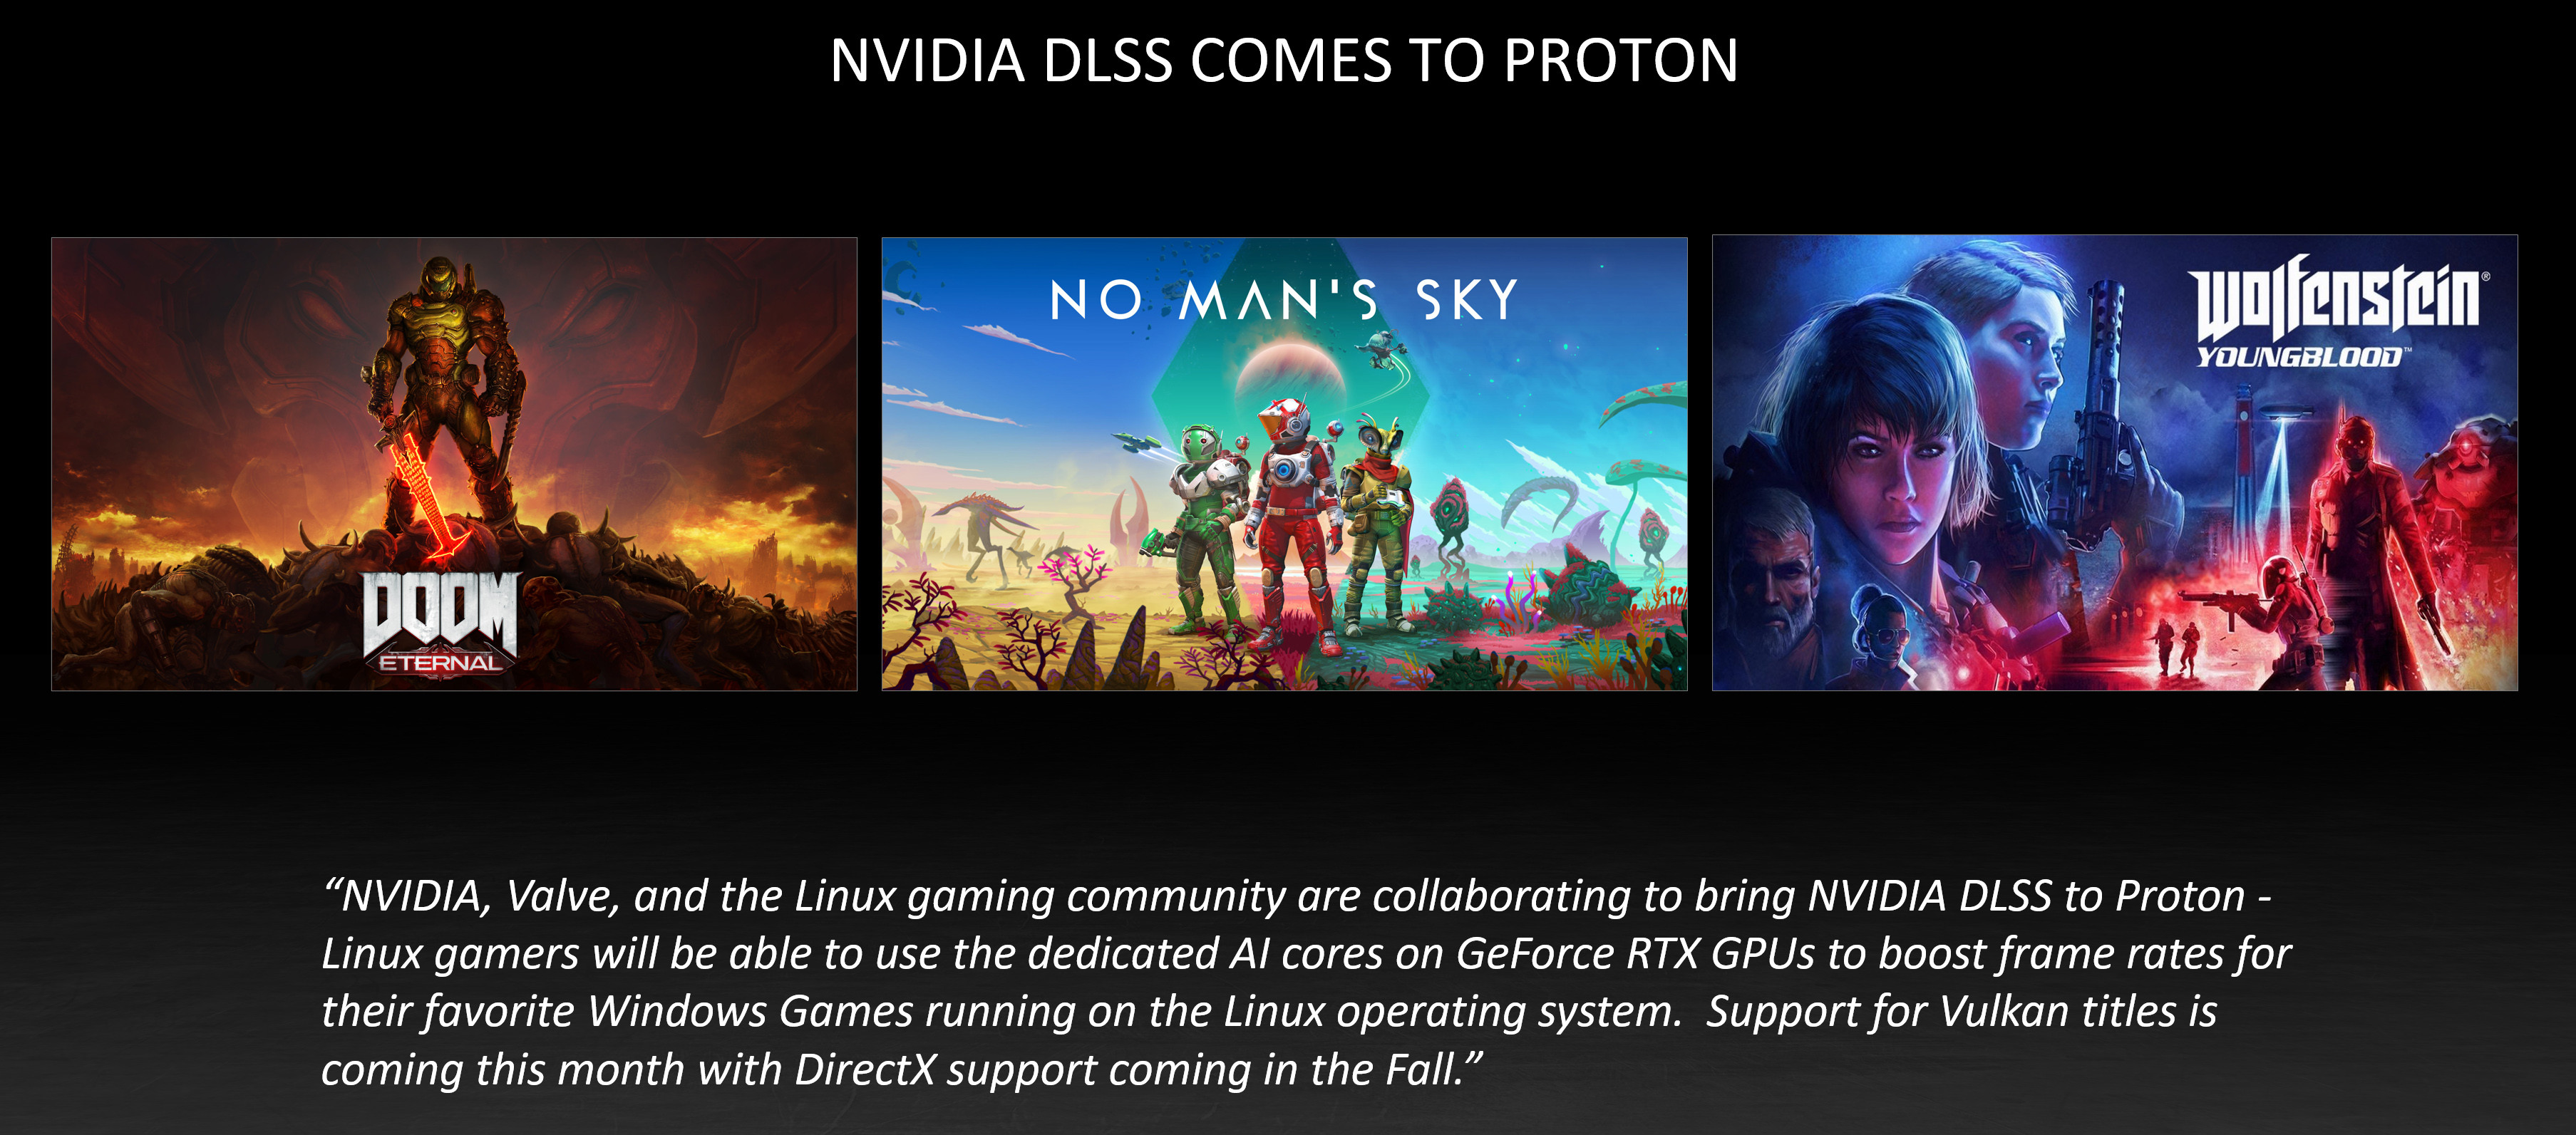 Nvidia DLSS comes to Proton